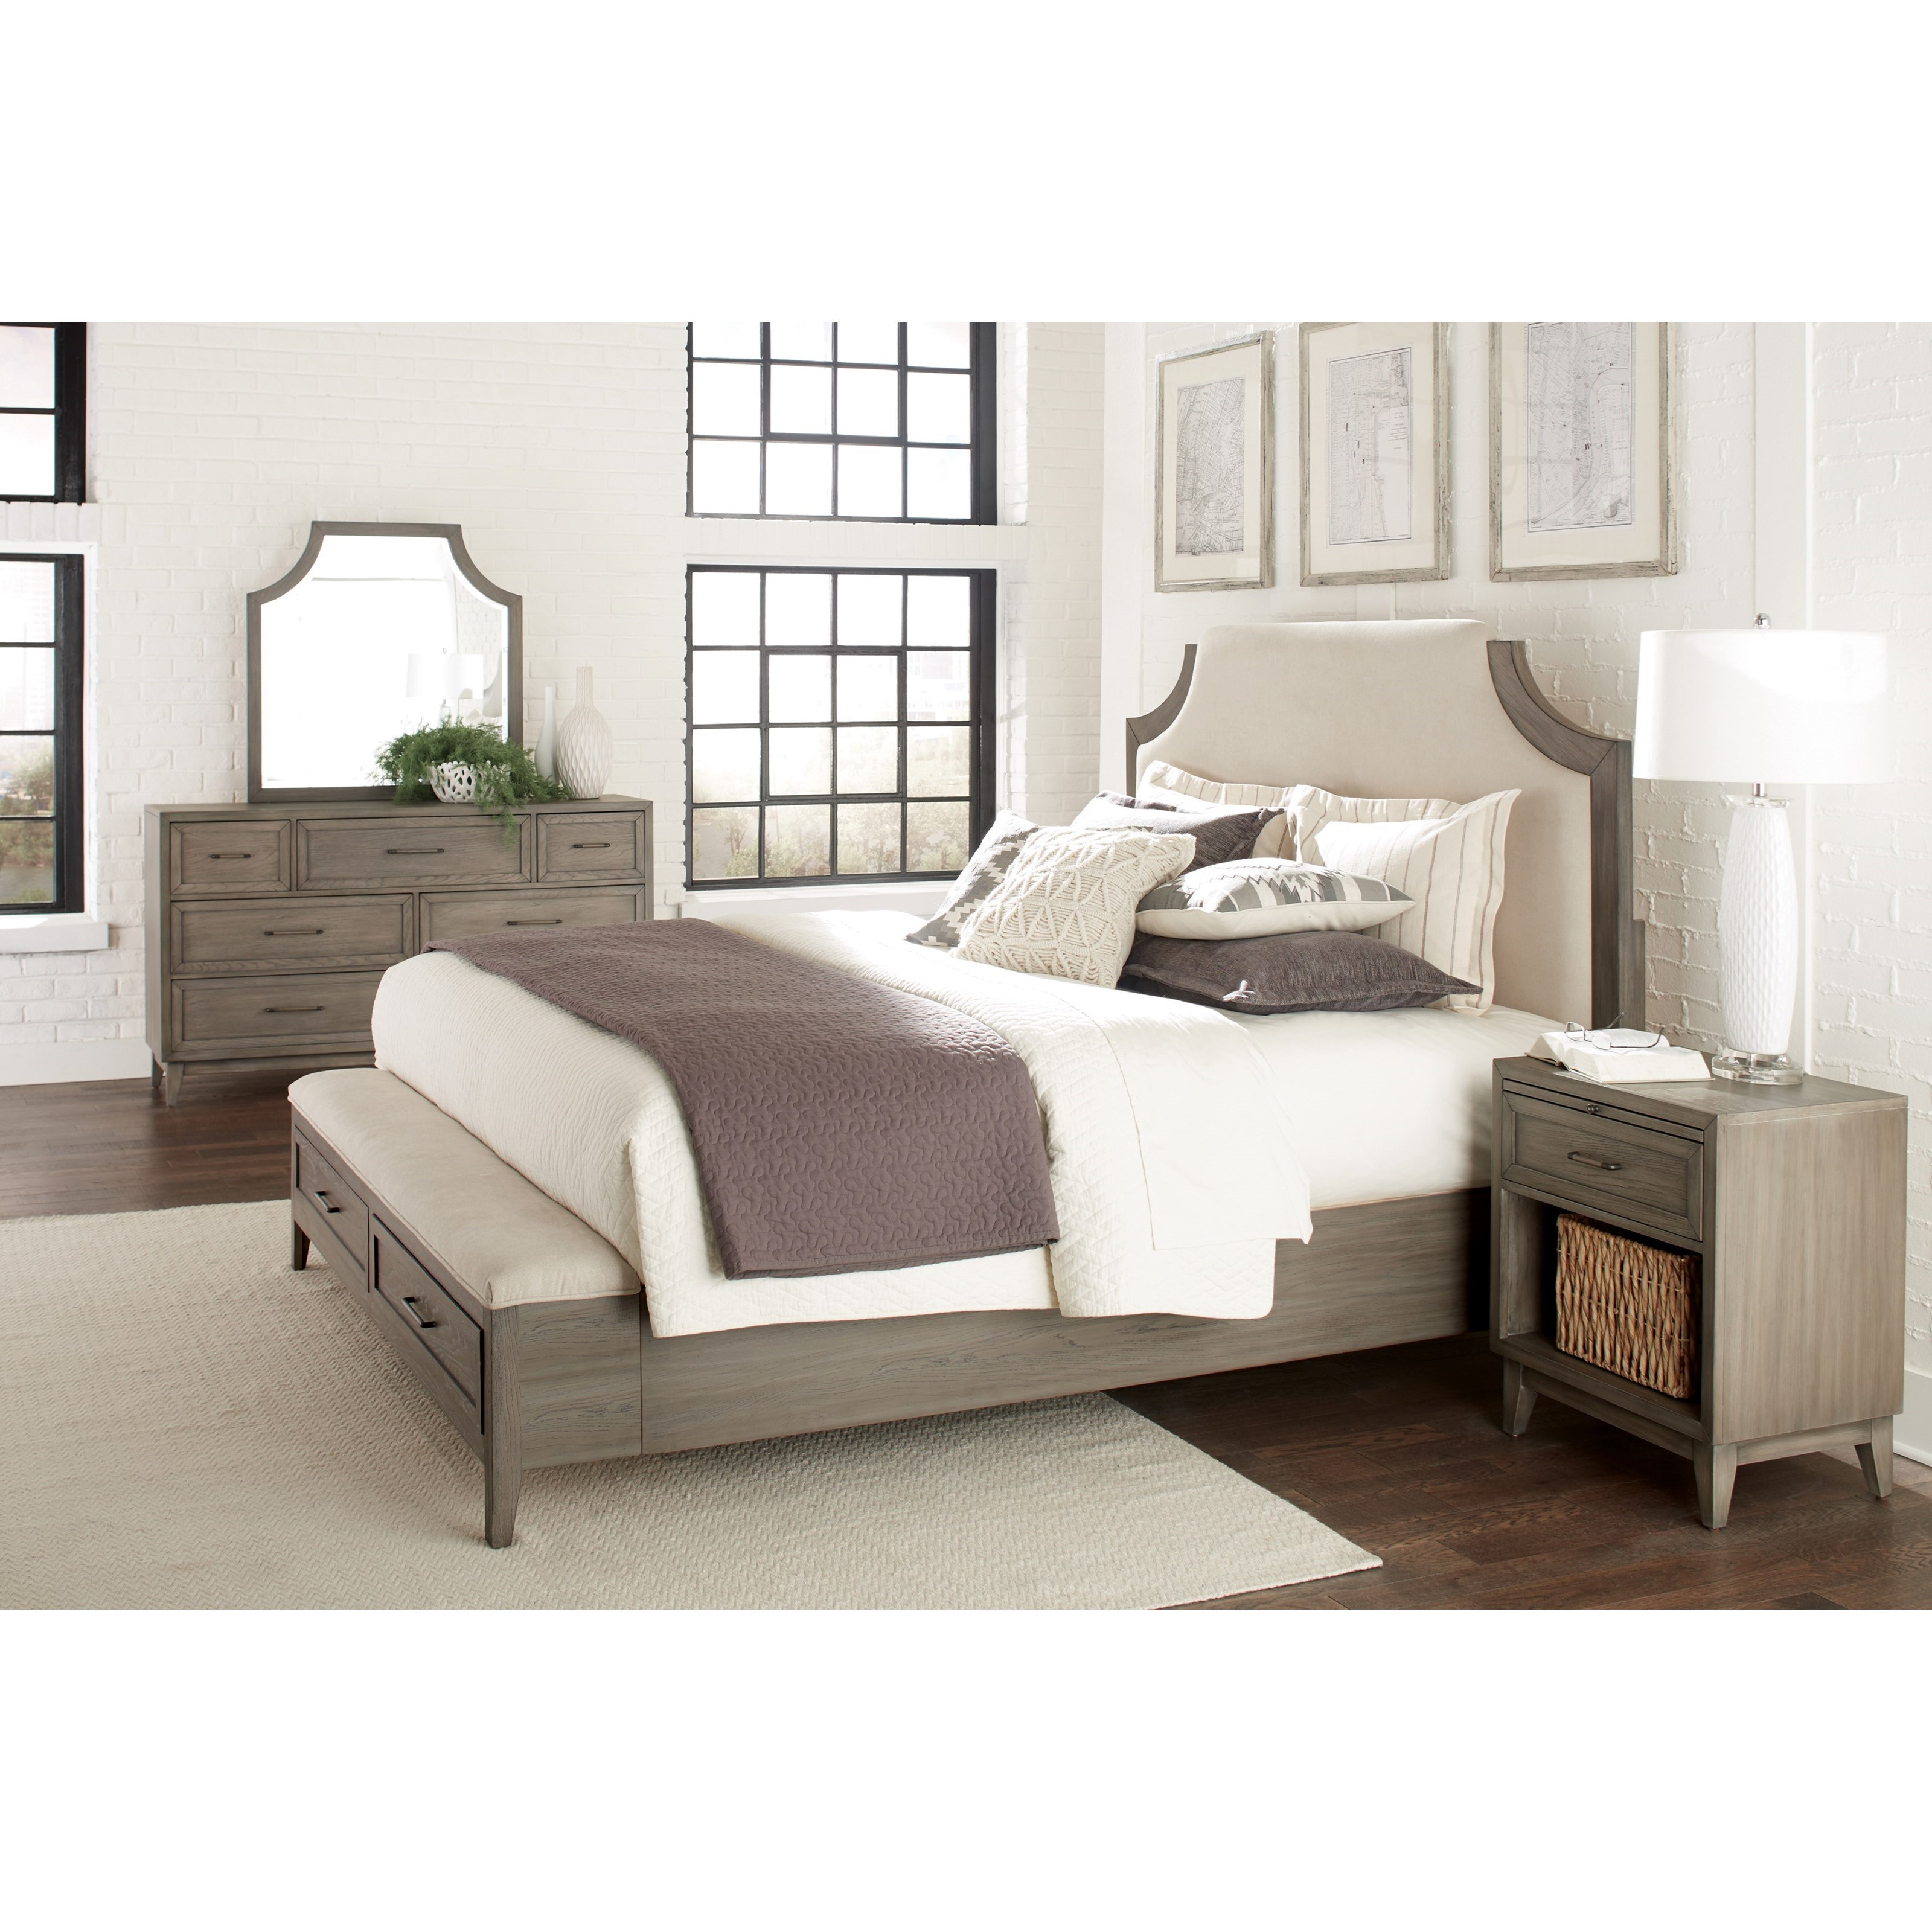 Riverside Furniture Vogue California King Upholstered Bed With Storage Bench Footboard Zak 39 S